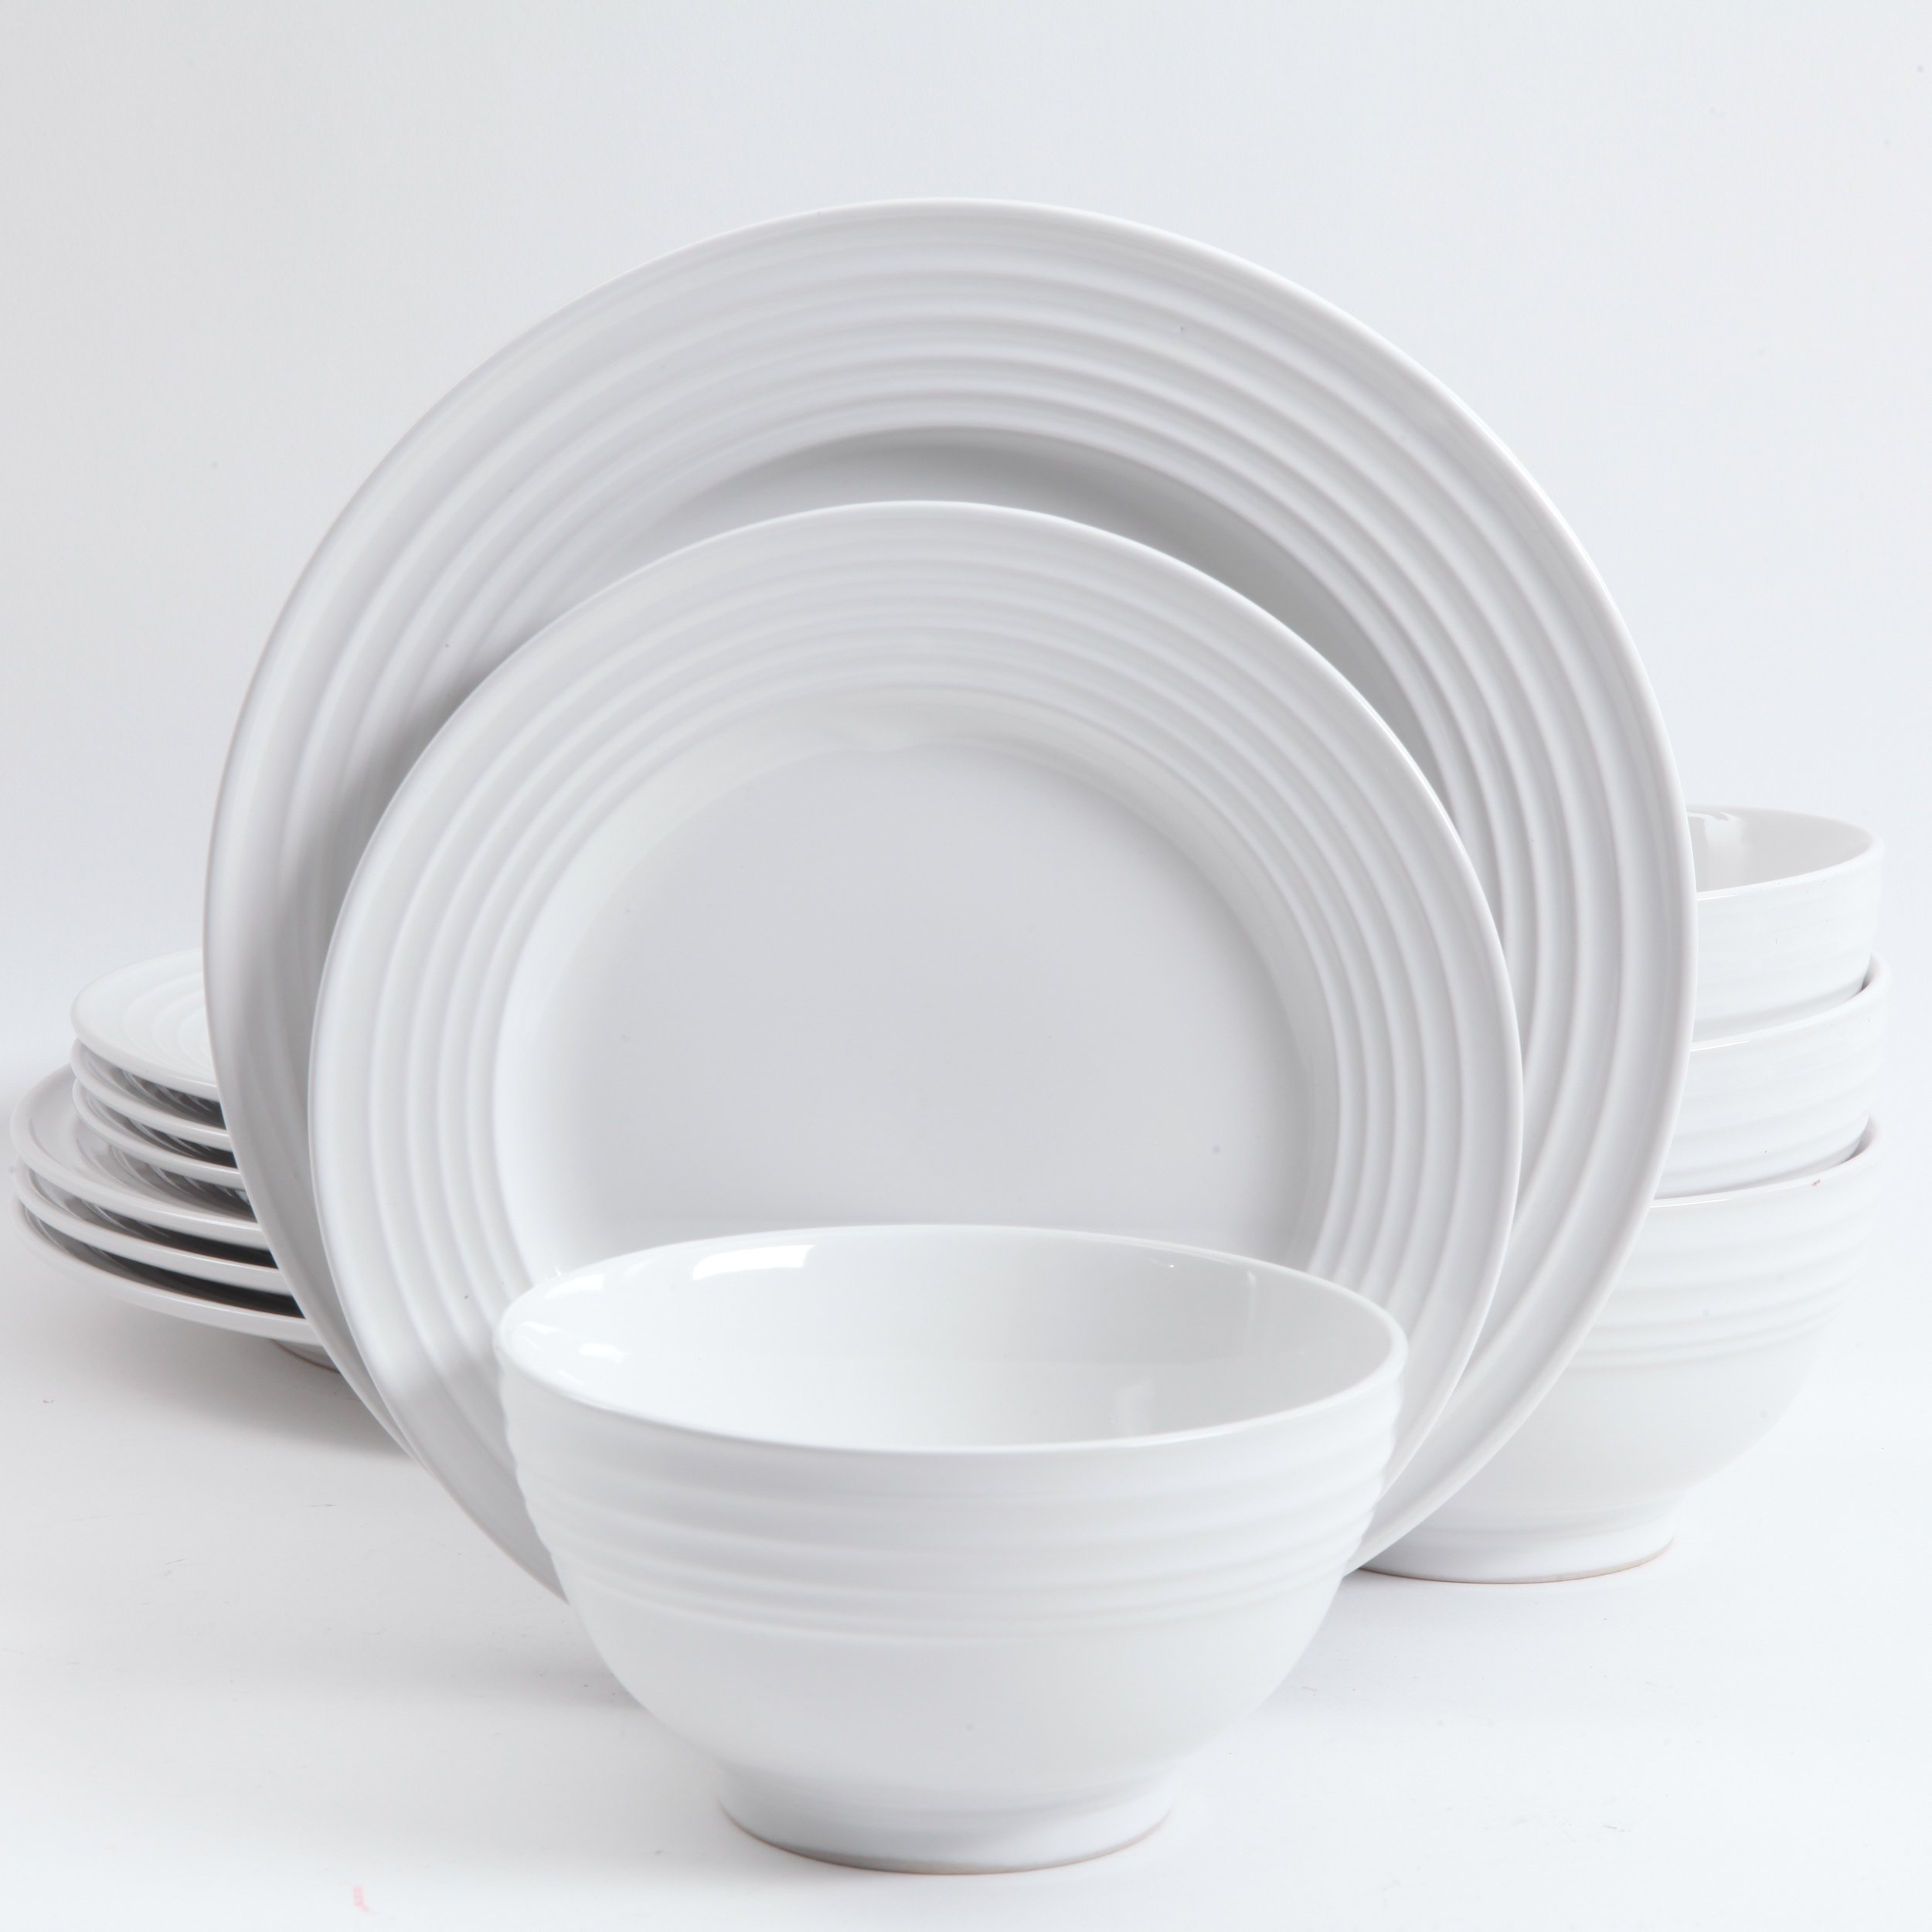 Gibson Home 12 Piece Plaza Cafe Round Dinnerware Set with Embossed Stoneware, White by Gibson Home (Image #3)